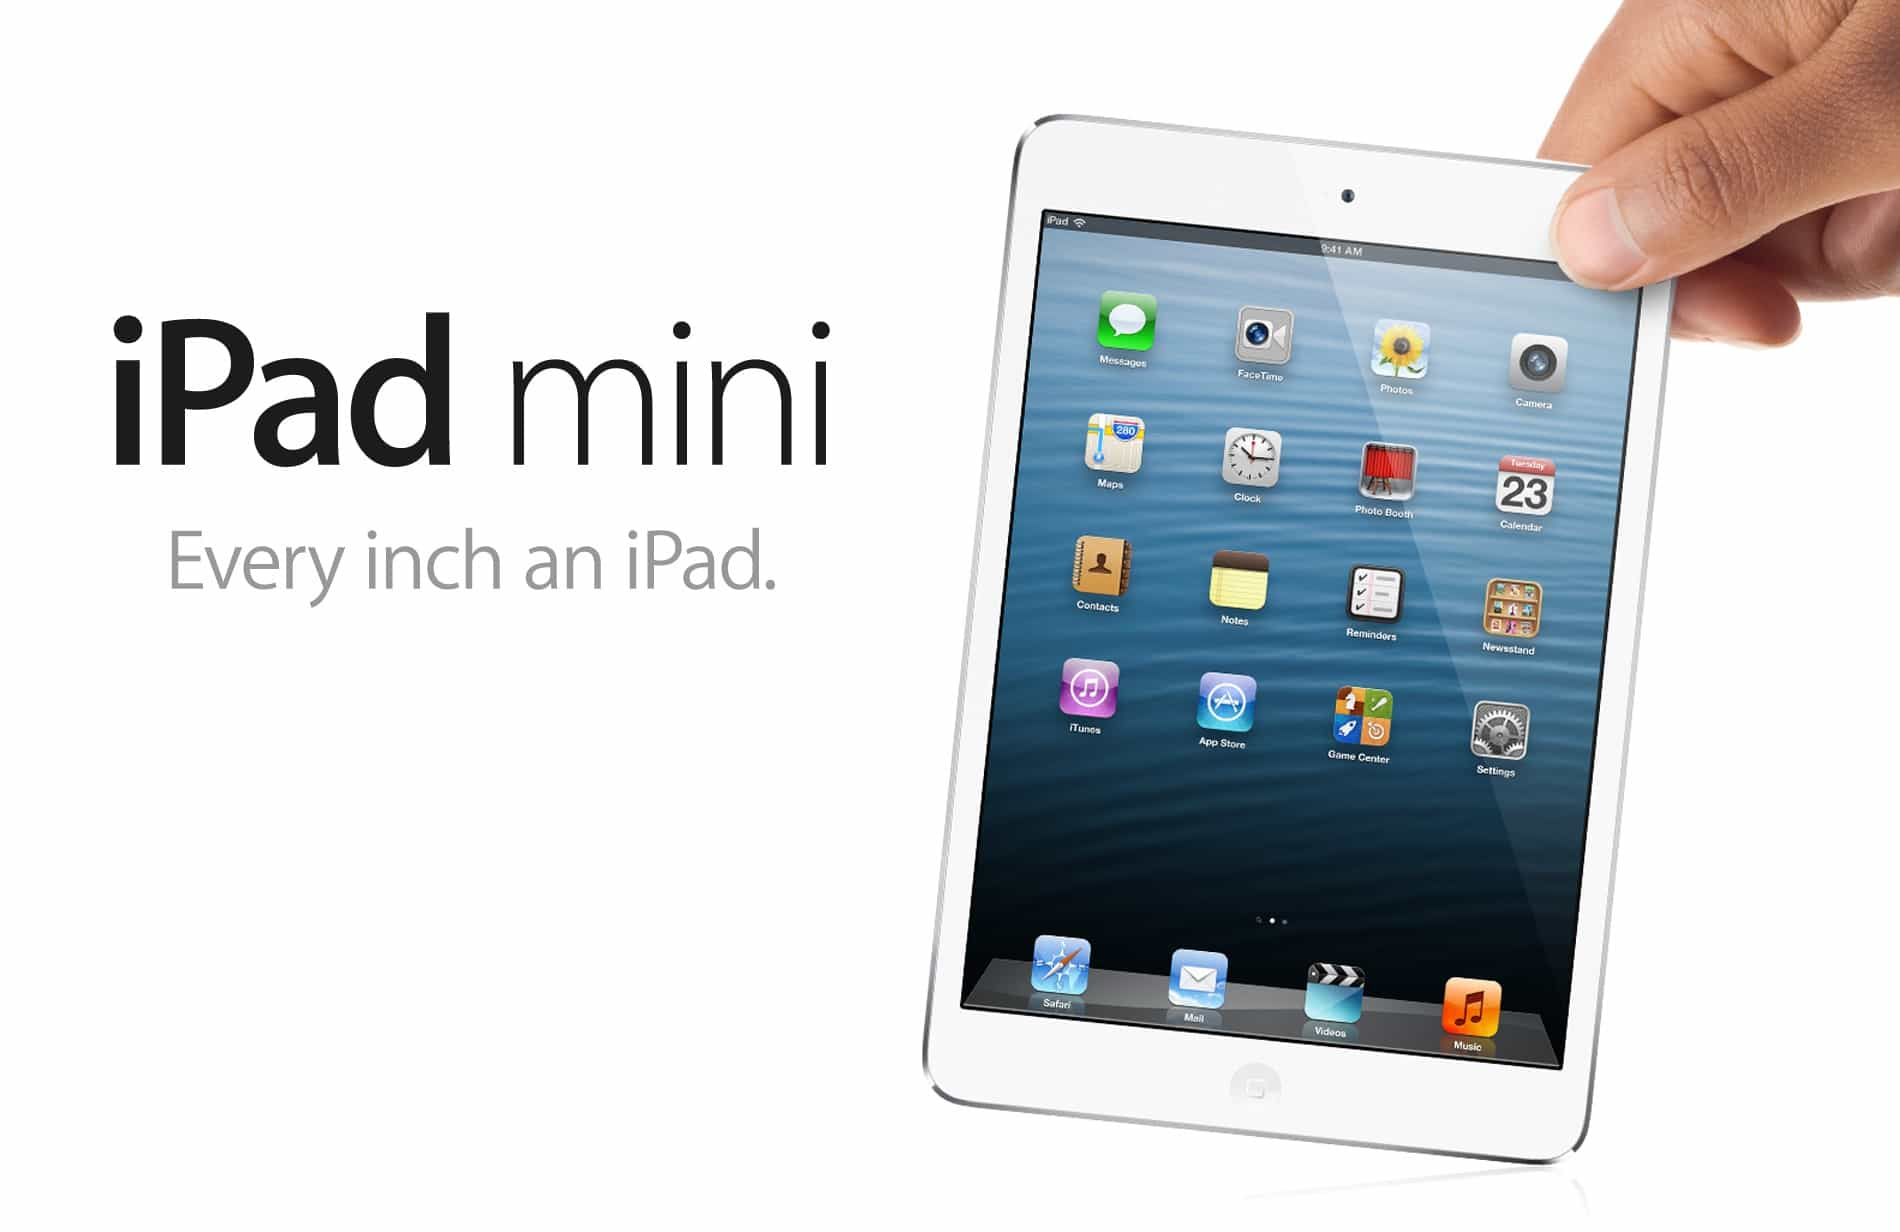 The iPad mini made a big splash for such a tiny device.